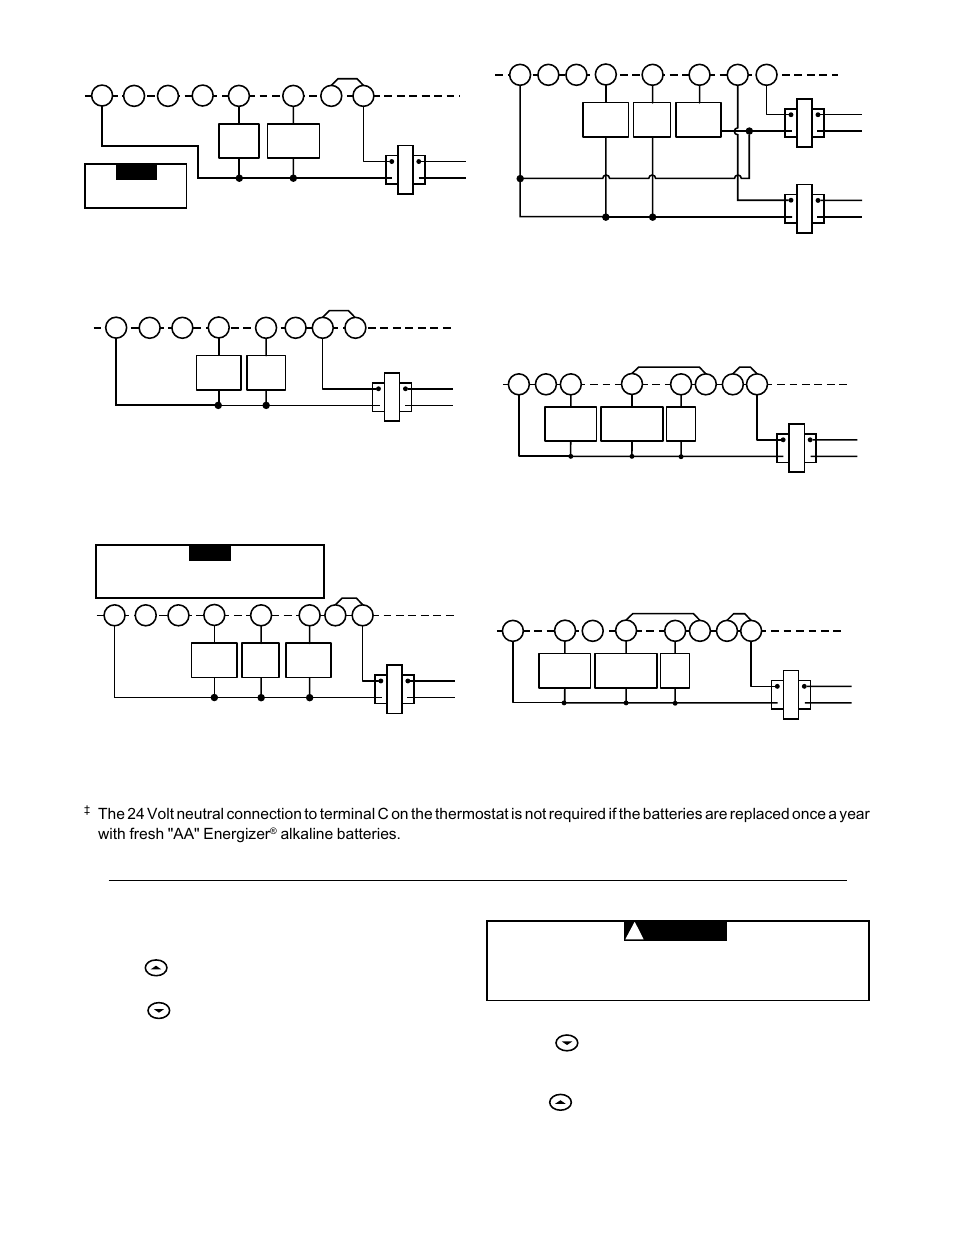 White Rodgers Thermostat Wiring Diagram 1f86 344 - WIRING CENTER •